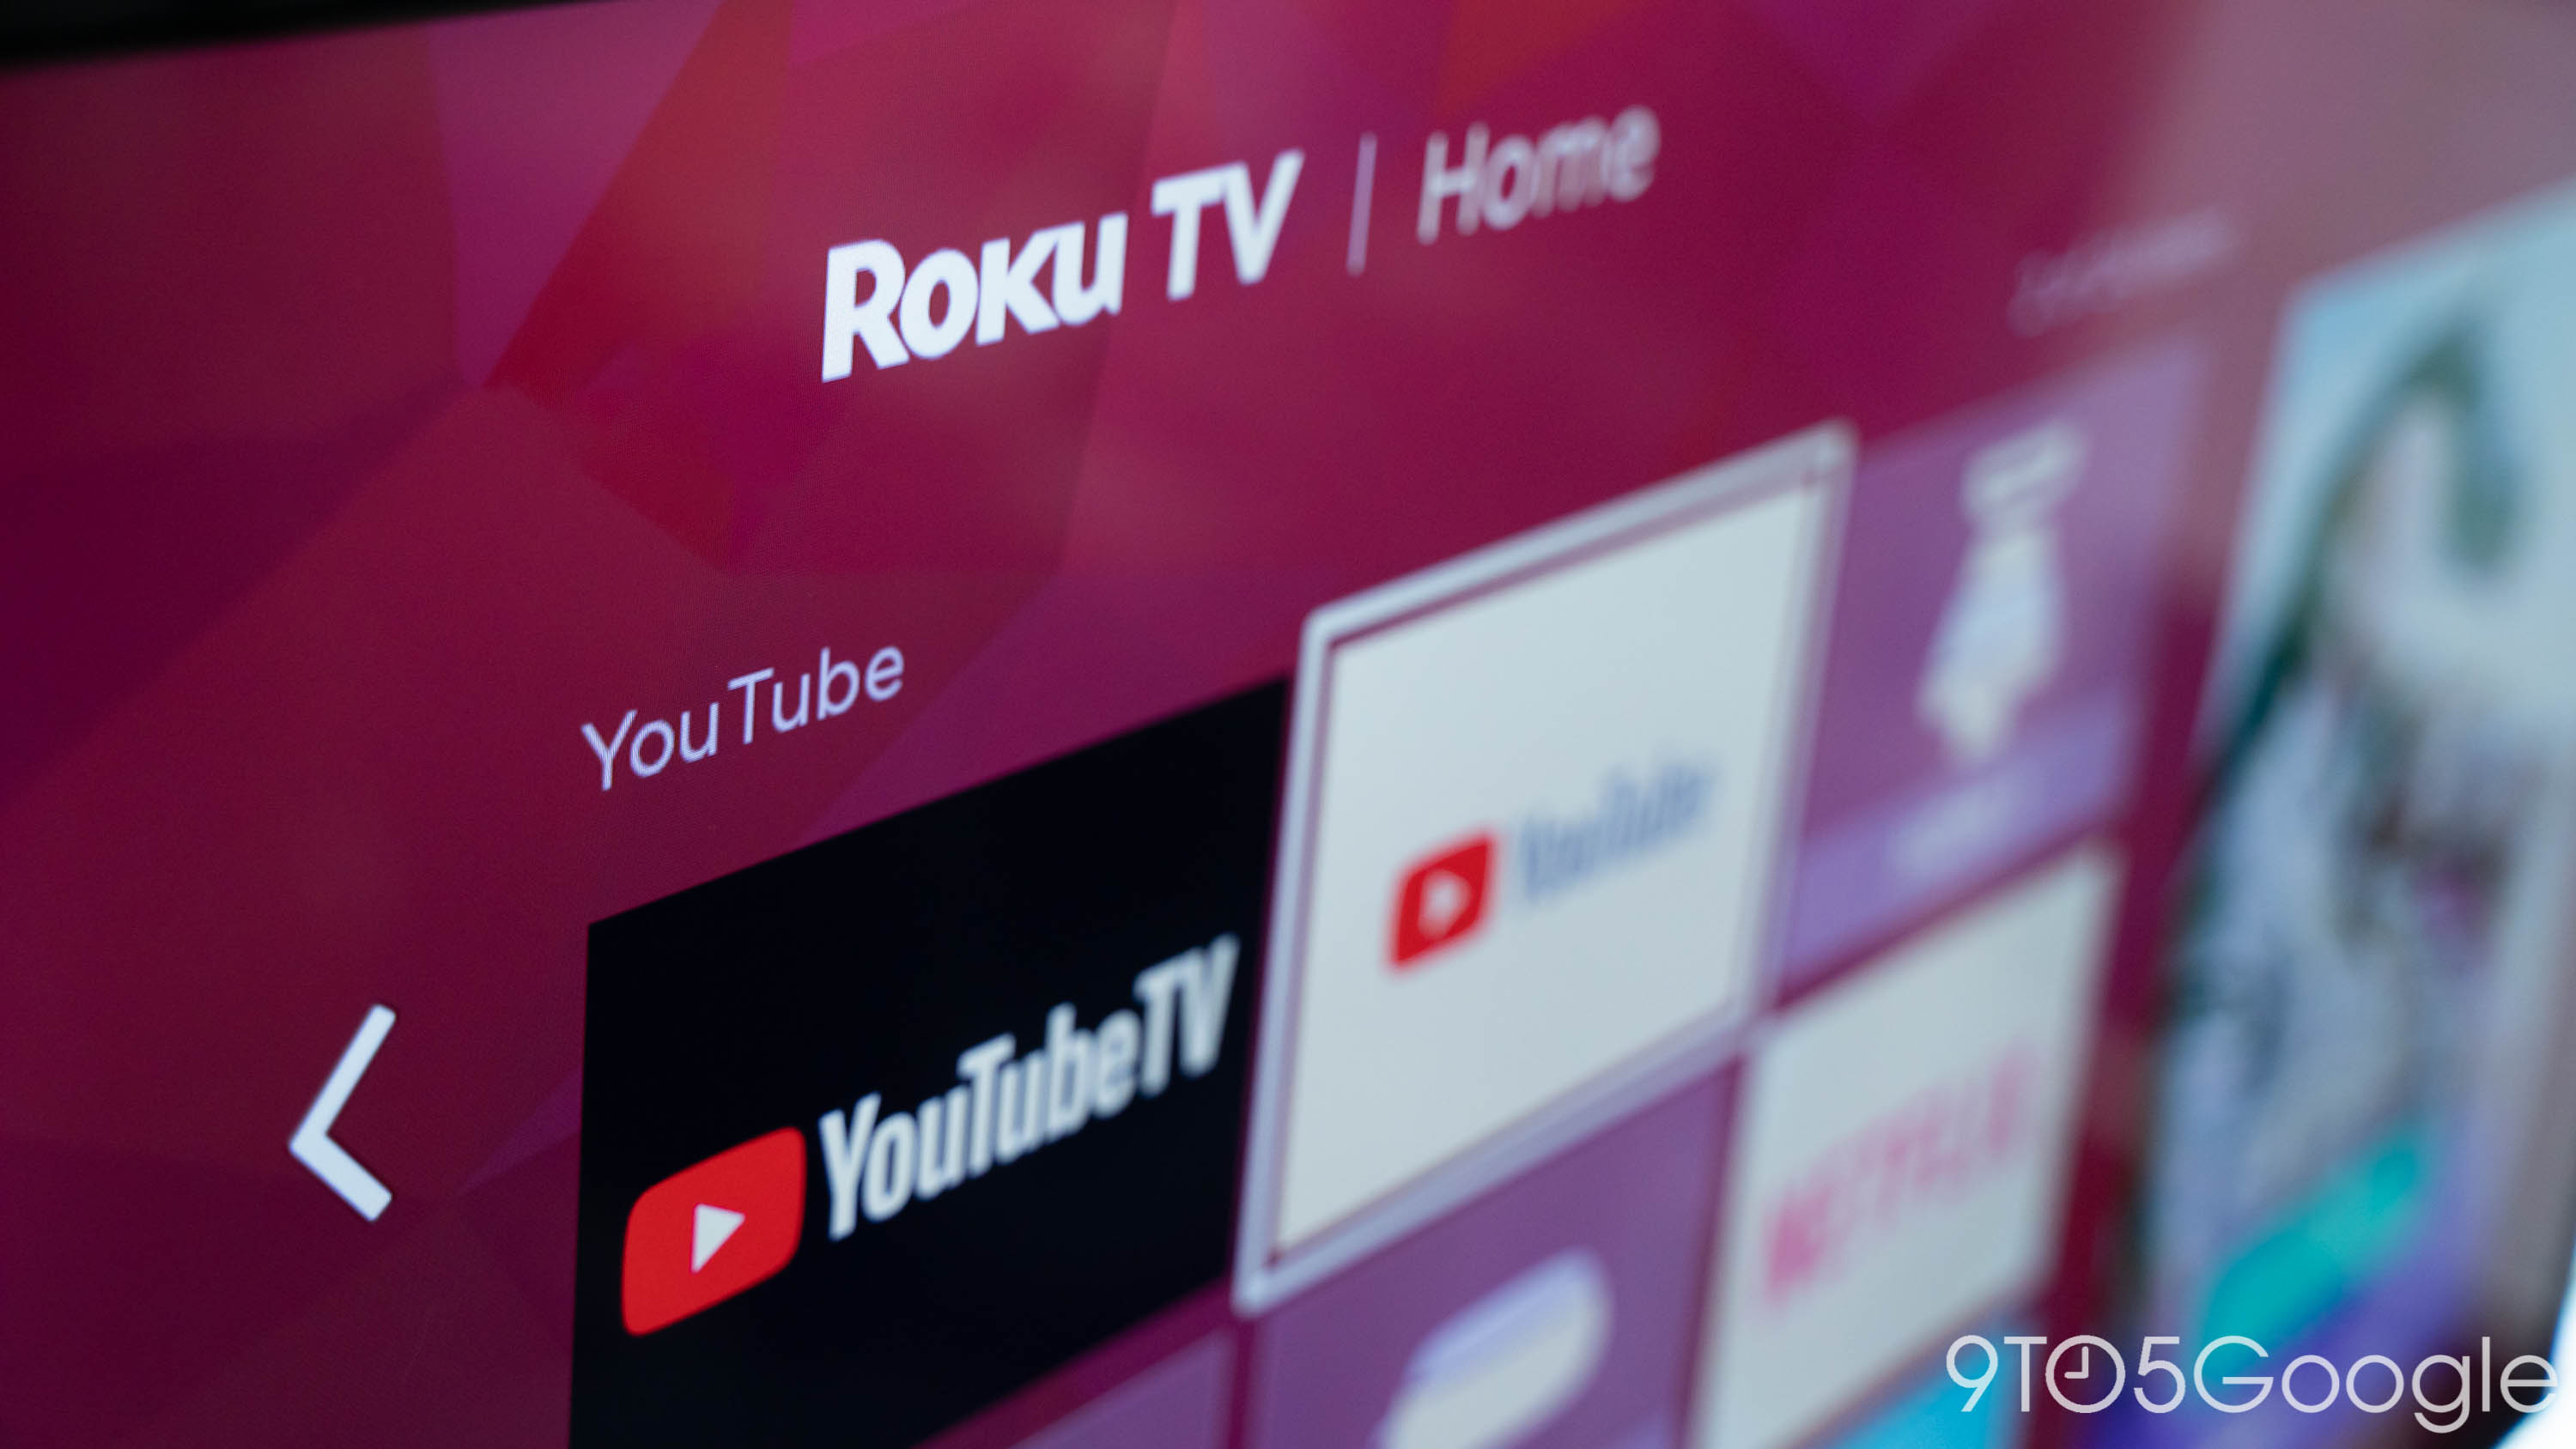 YouTube TV coming to YouTube app on Roku as workaround - 9to5Google